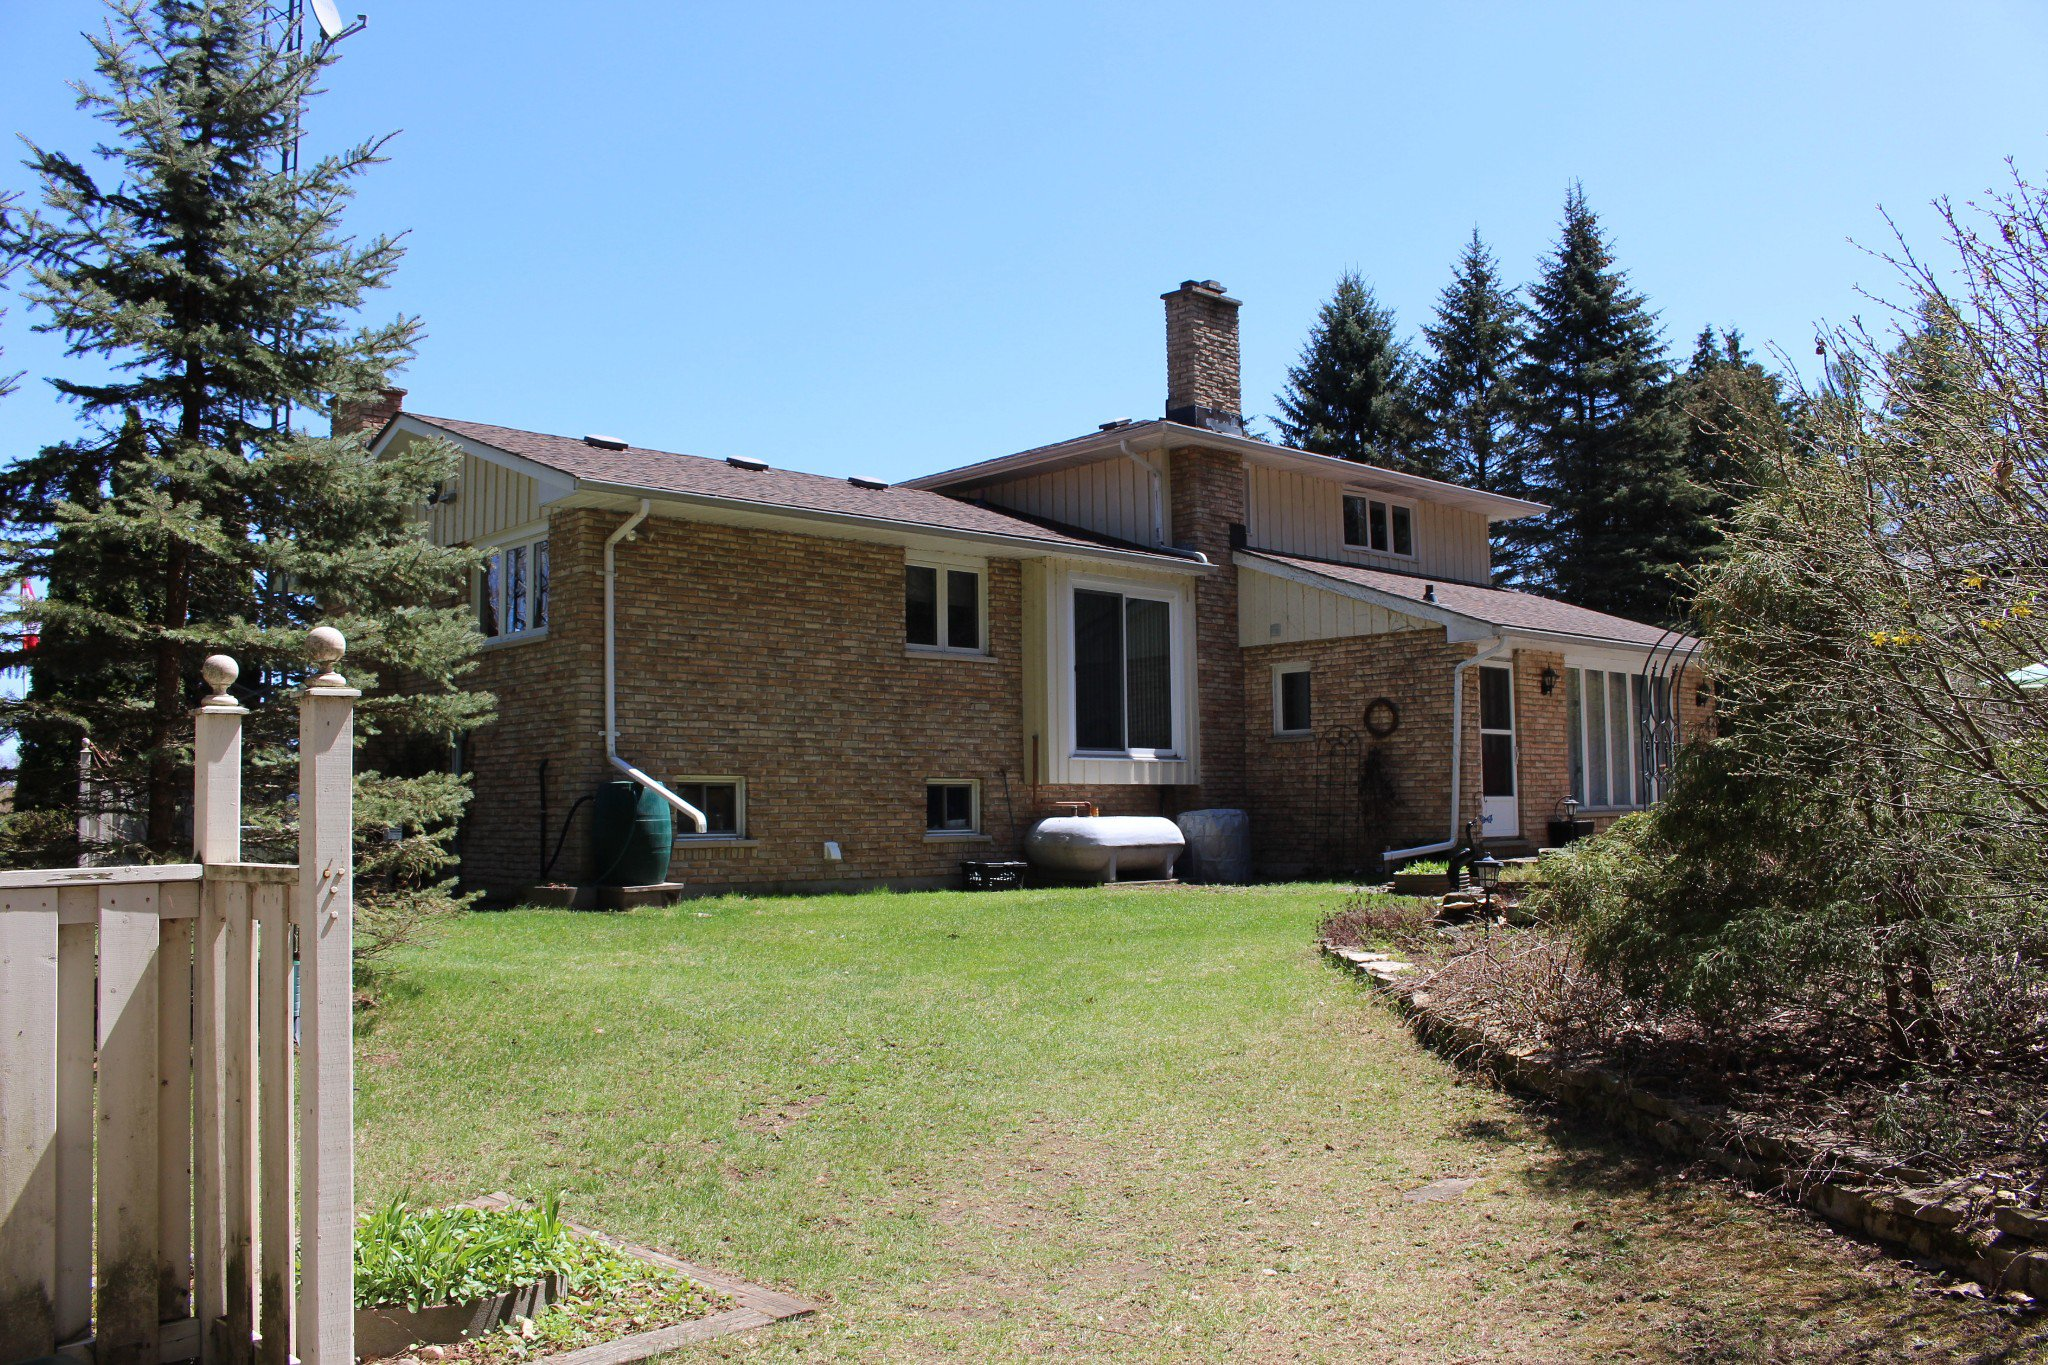 Photo 35: Photos: 5144 Oak Hills Road in Bewdley: Residential Detached for sale : MLS®# 125303